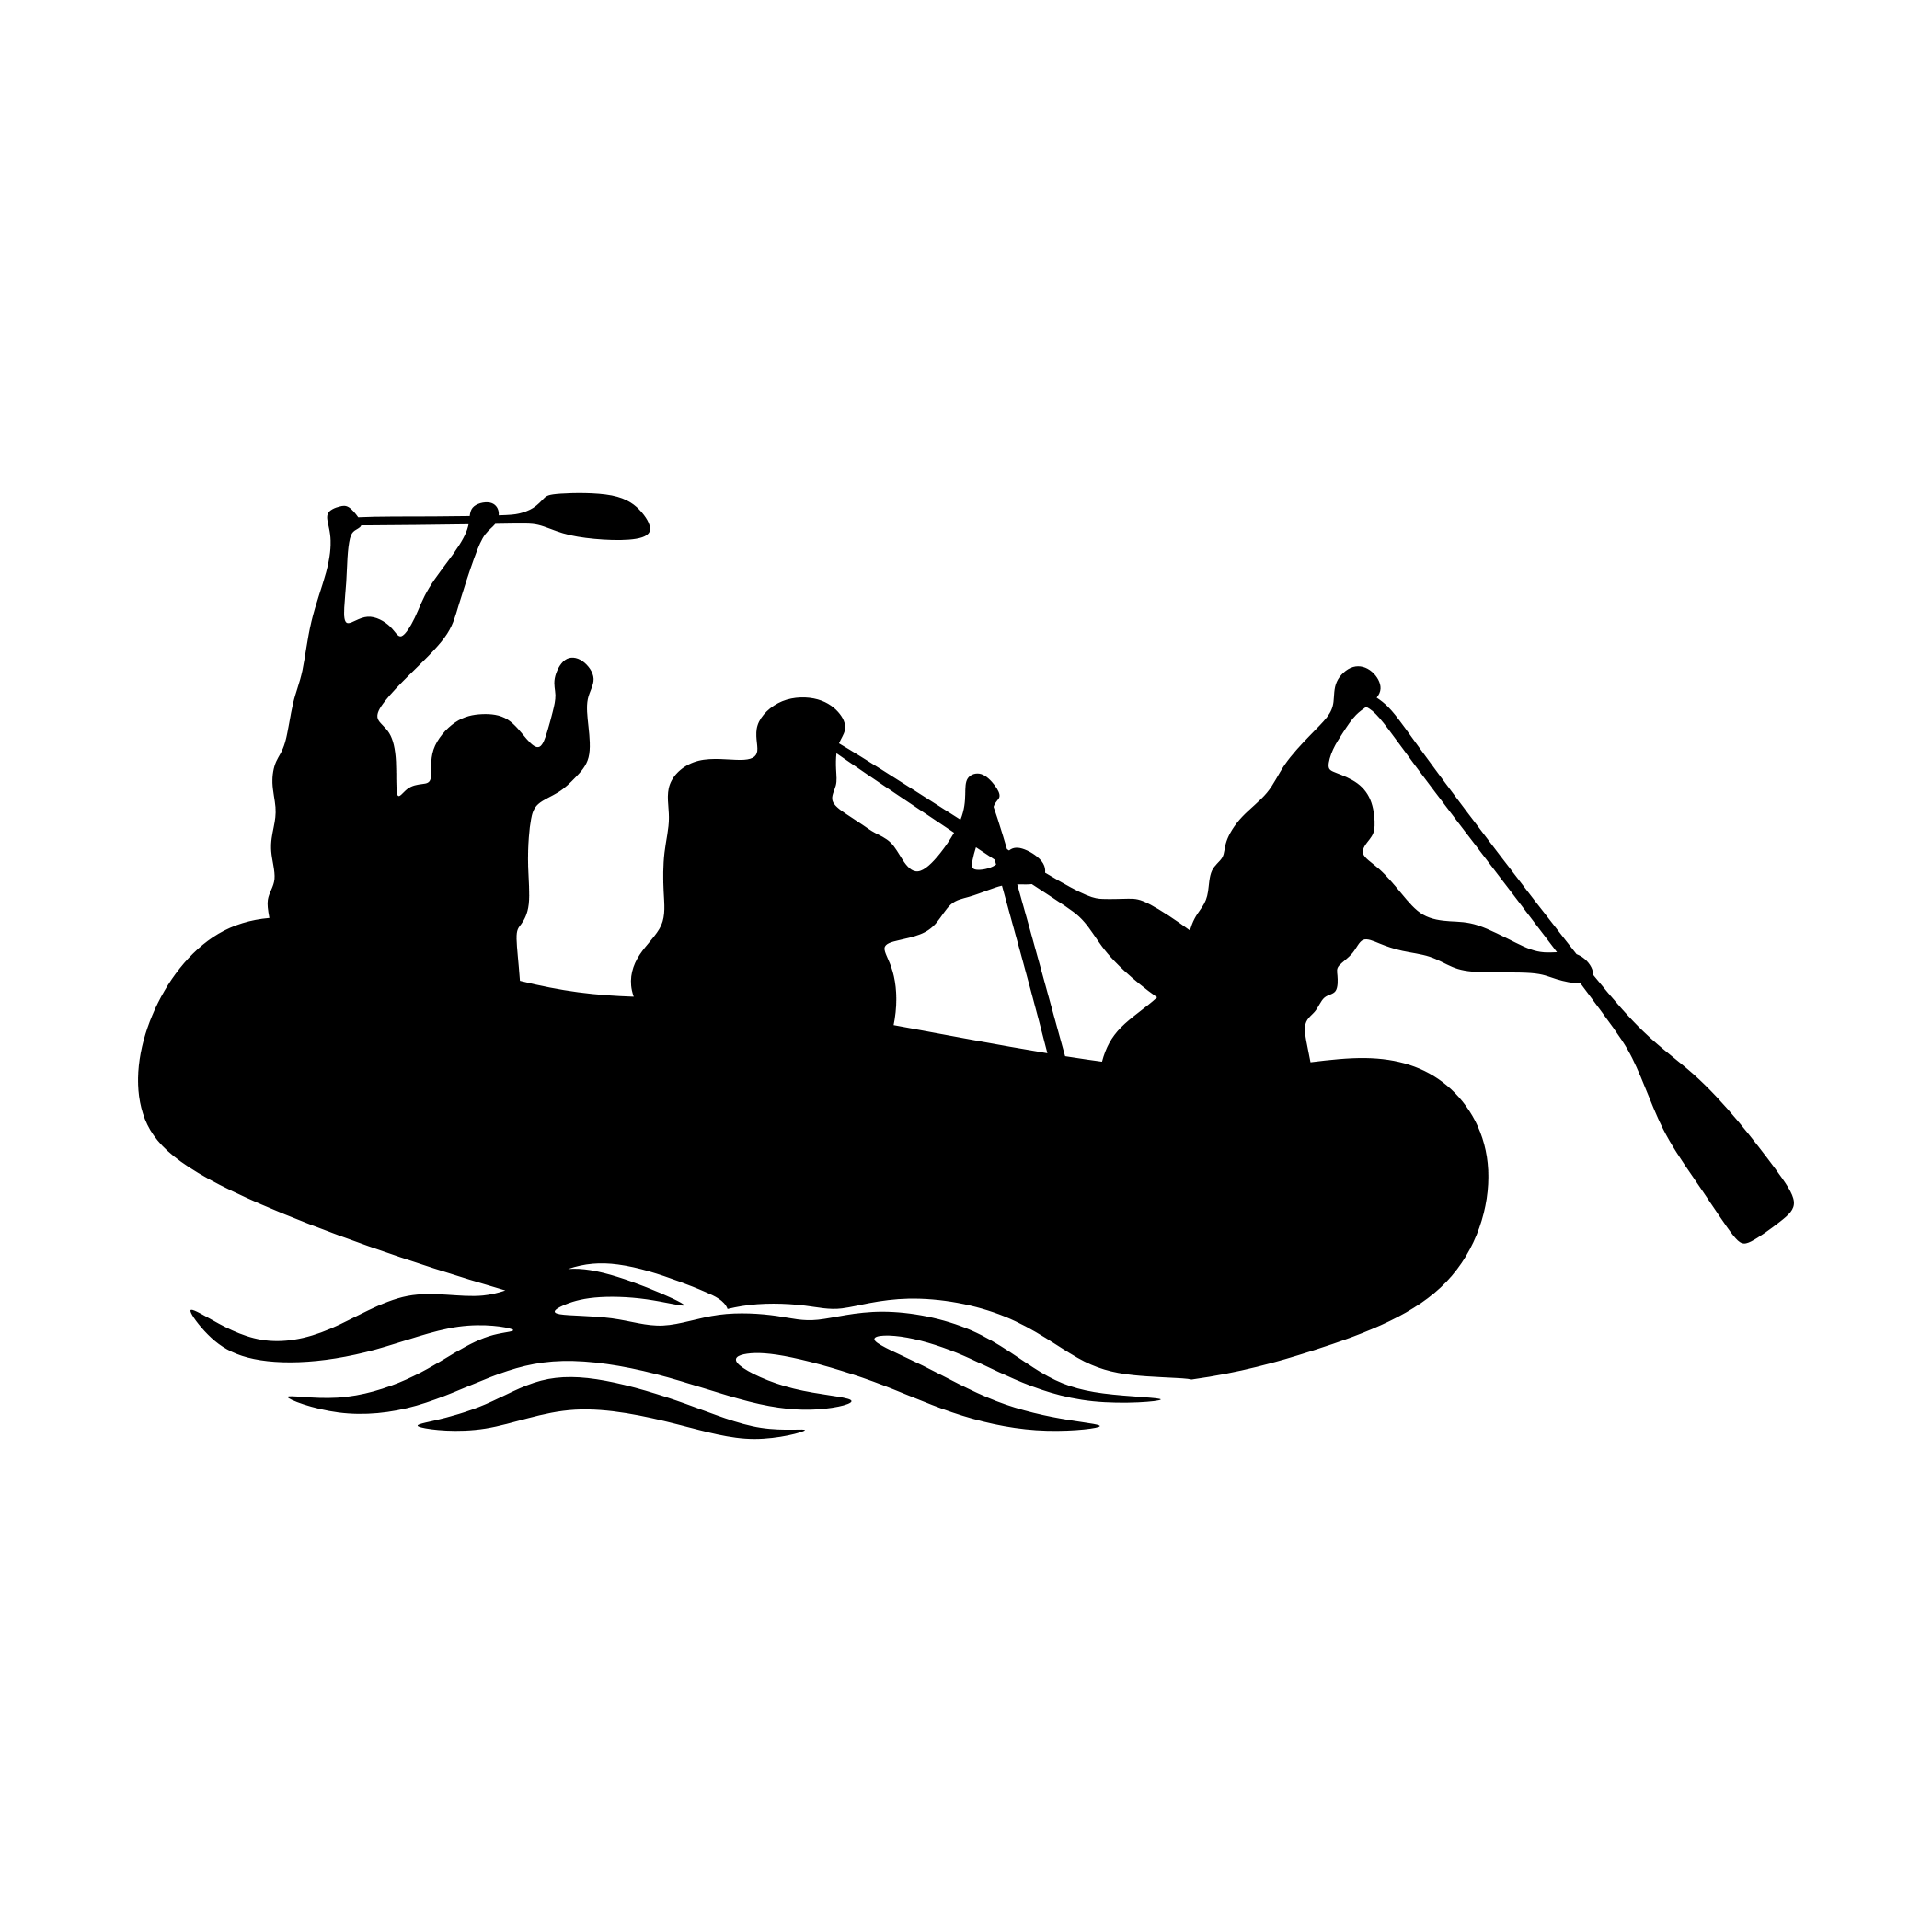 White water rafting image clipart svg stock White Water Rafting #CustomPrintedTshirts ... svg stock